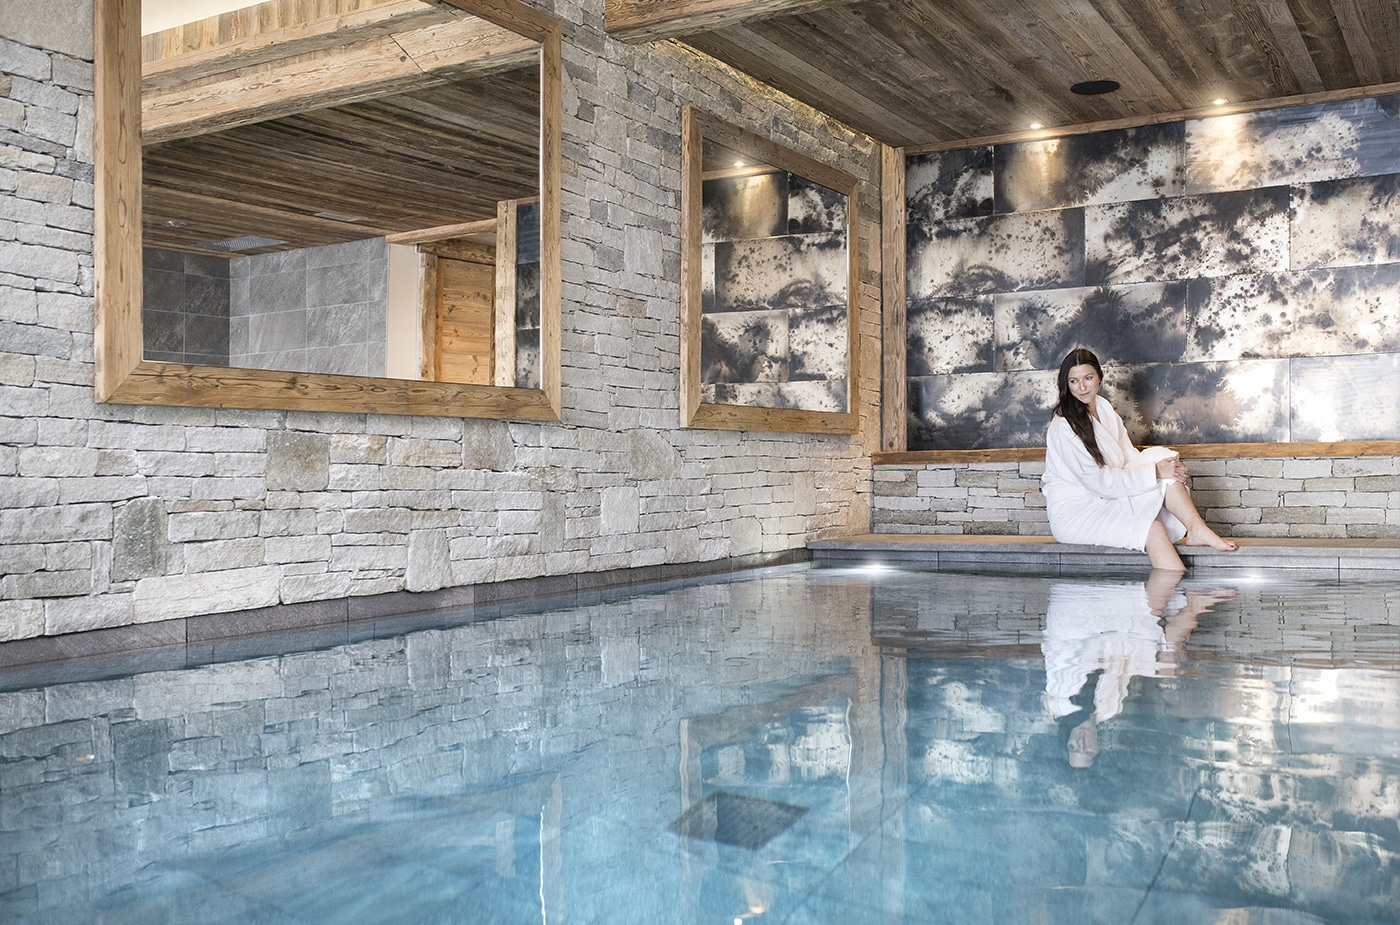 chalet-ovalala-val-disere-piscine-interieure-zoom1